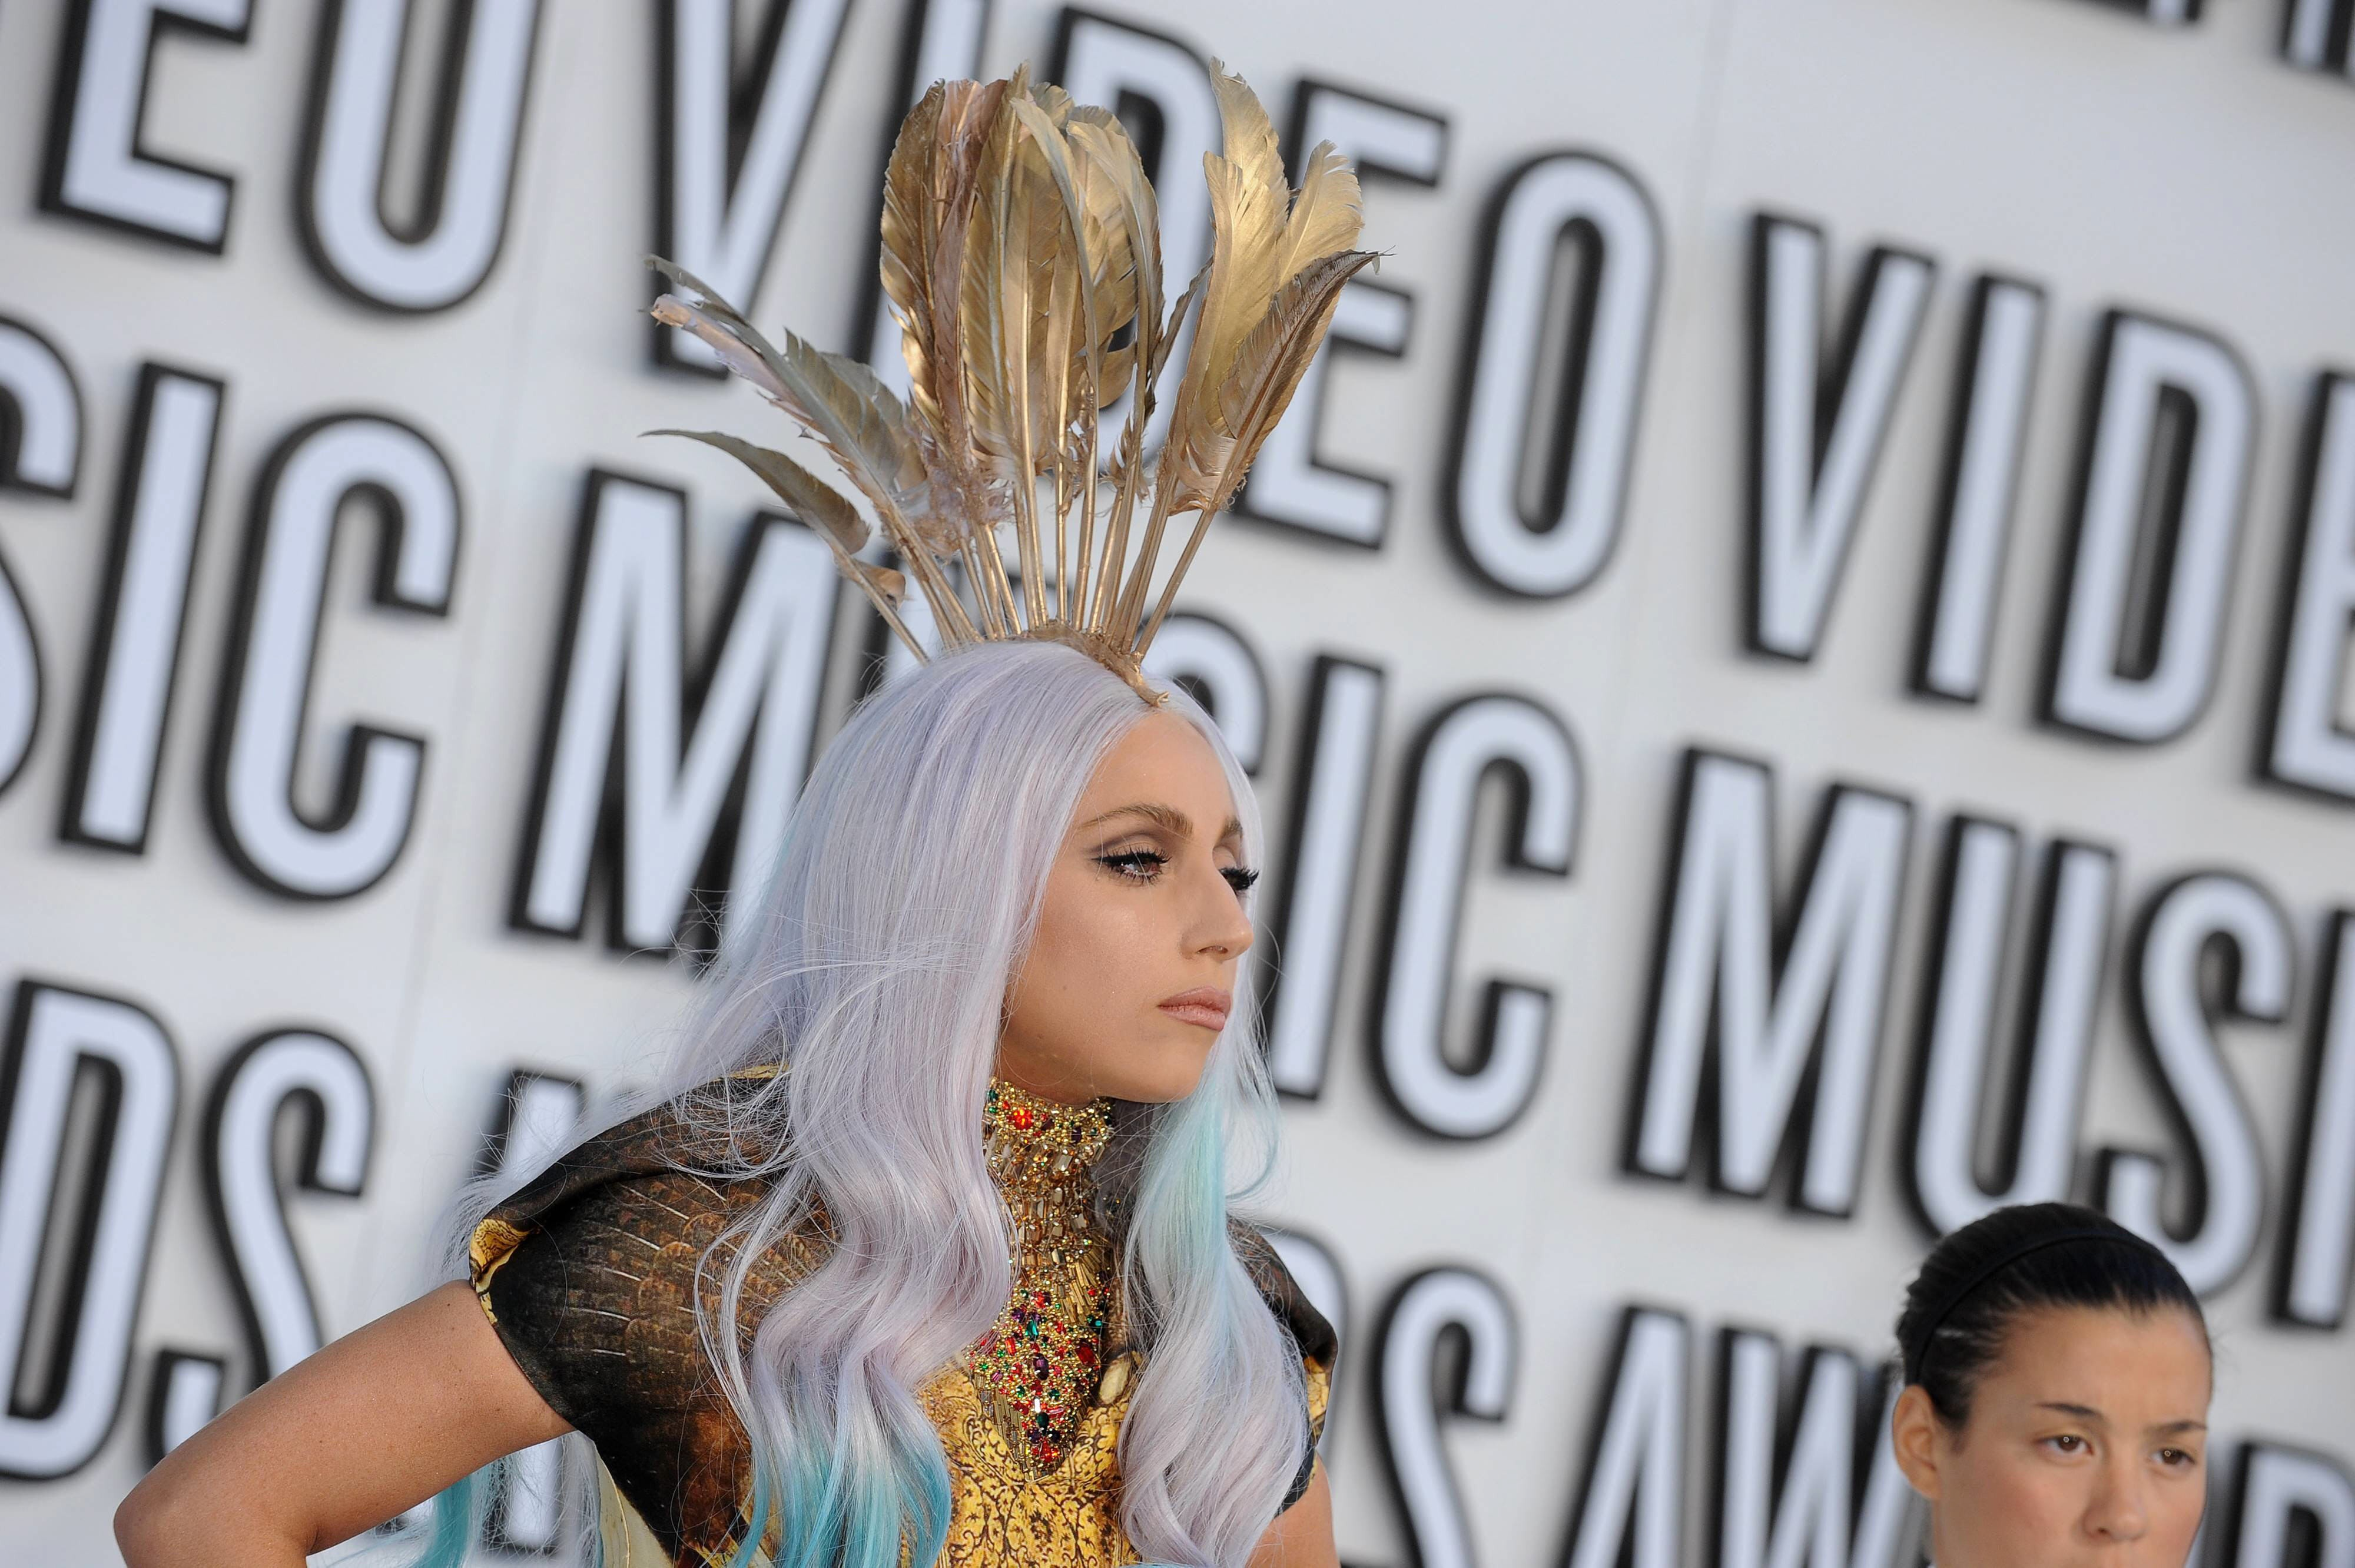 Wallpaper: un'estrosa Lady Gaga agli MTV Video Music Awards 2010